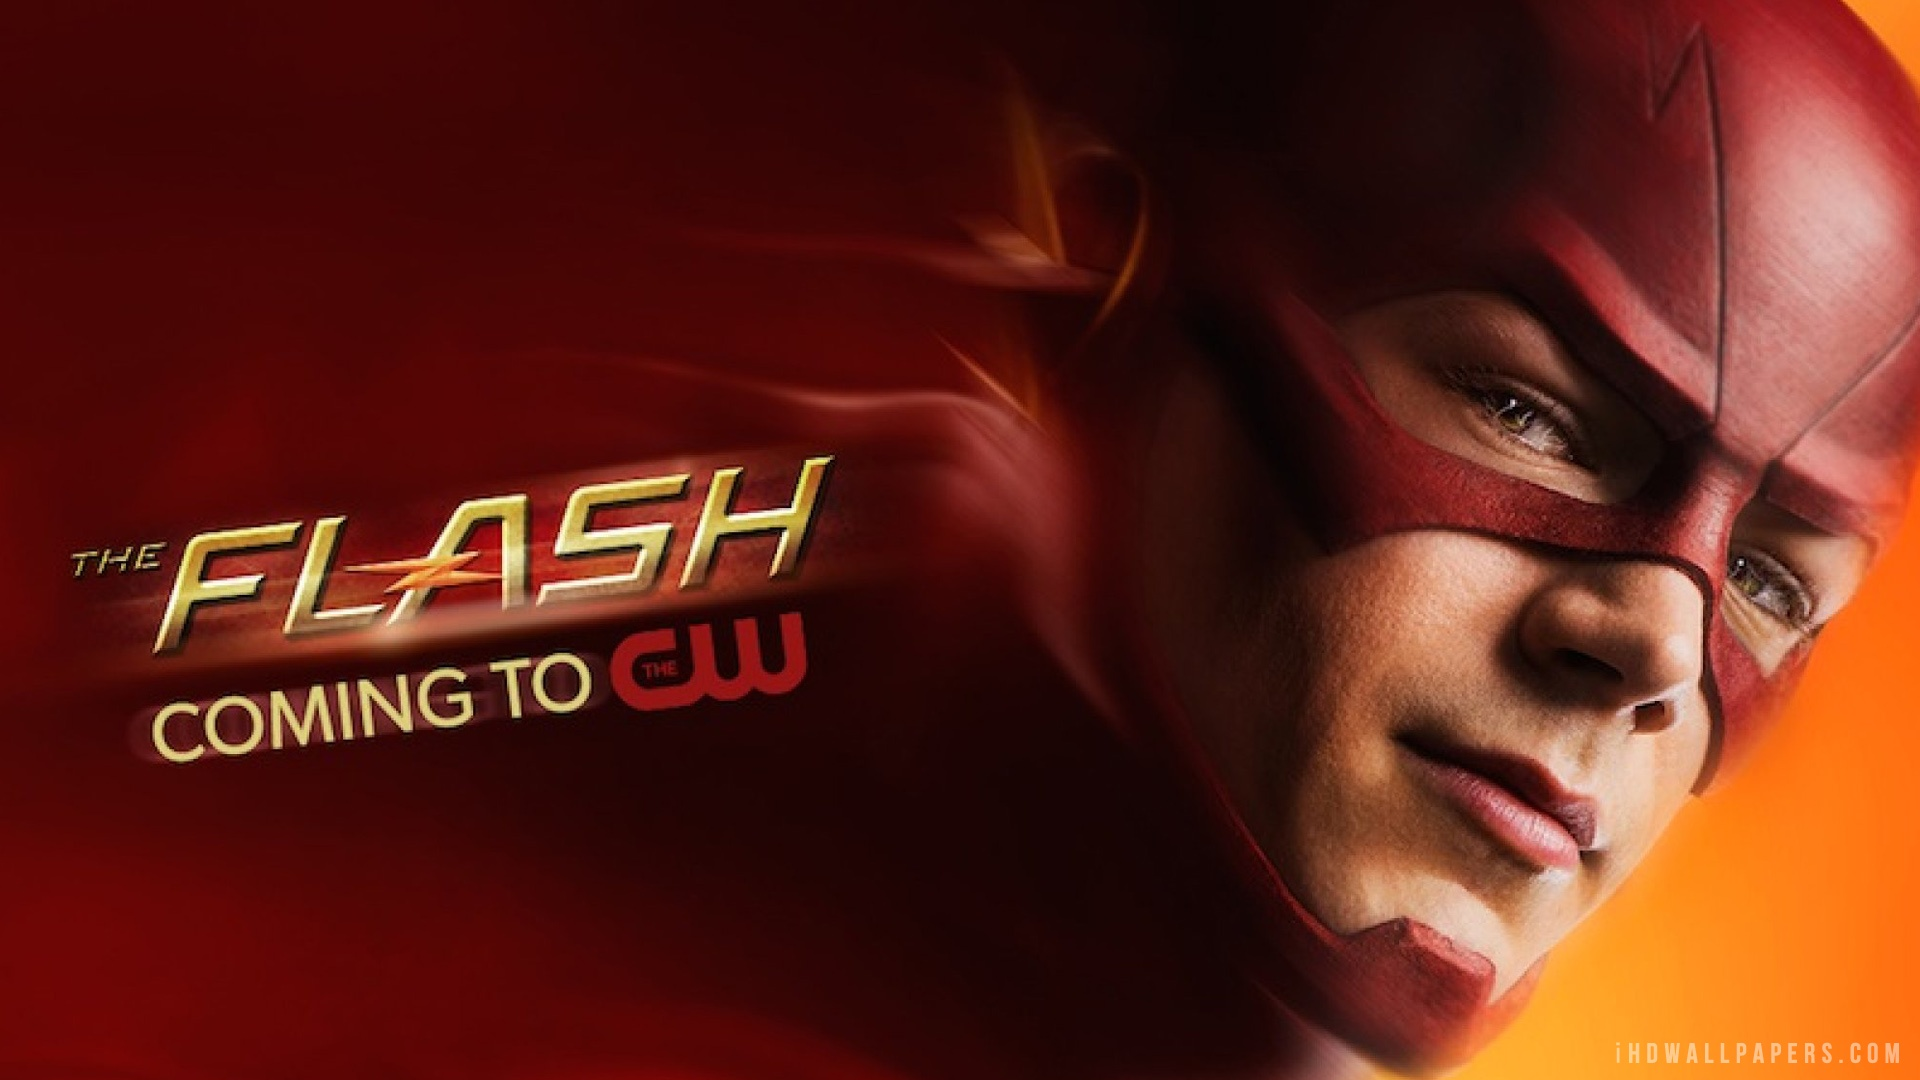 The Flash 2014 TV Series HD Wallpaper   iHD Wallpapers 1920x1080